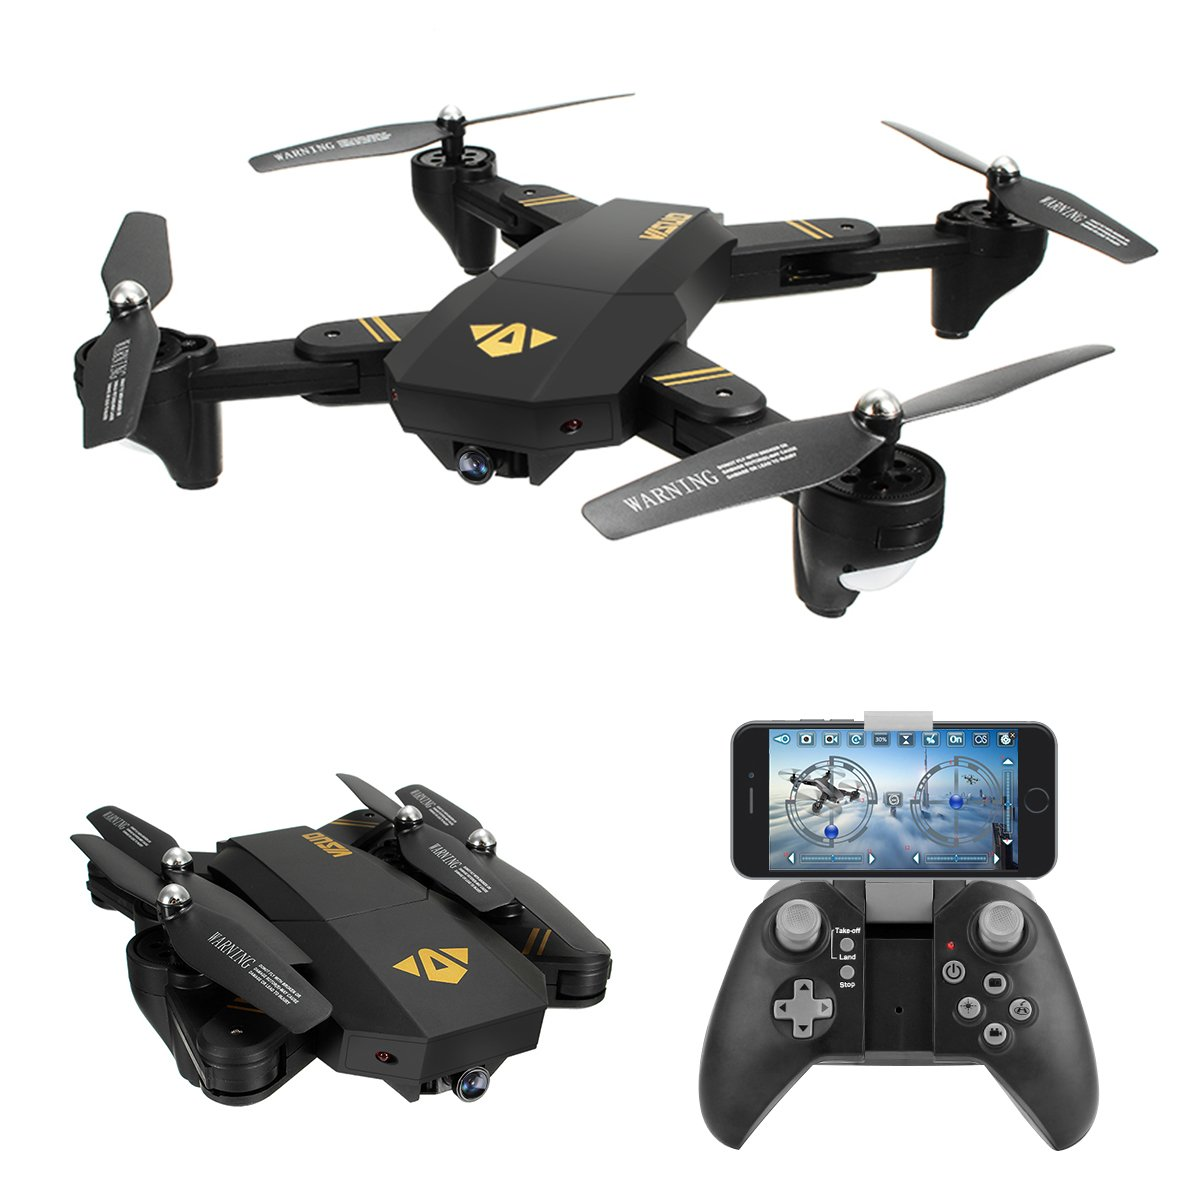 REALACC XS809HW Quadcopter Drone